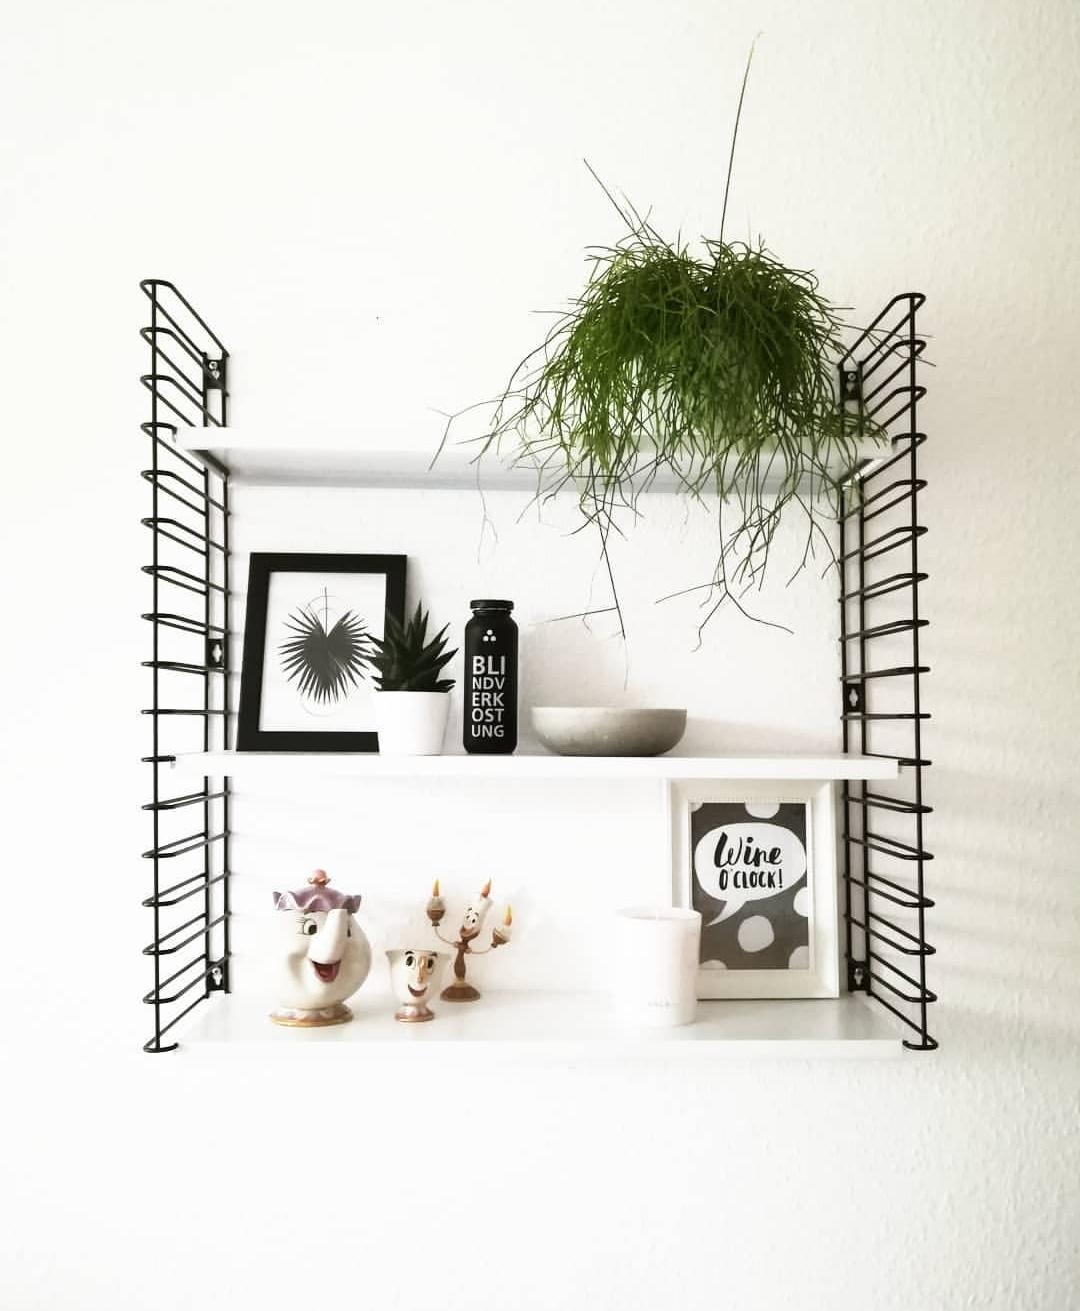 Stringshelf #disneydetails #whiteliving #blackinterior #blackandwhite #homestyle #wgzimmer